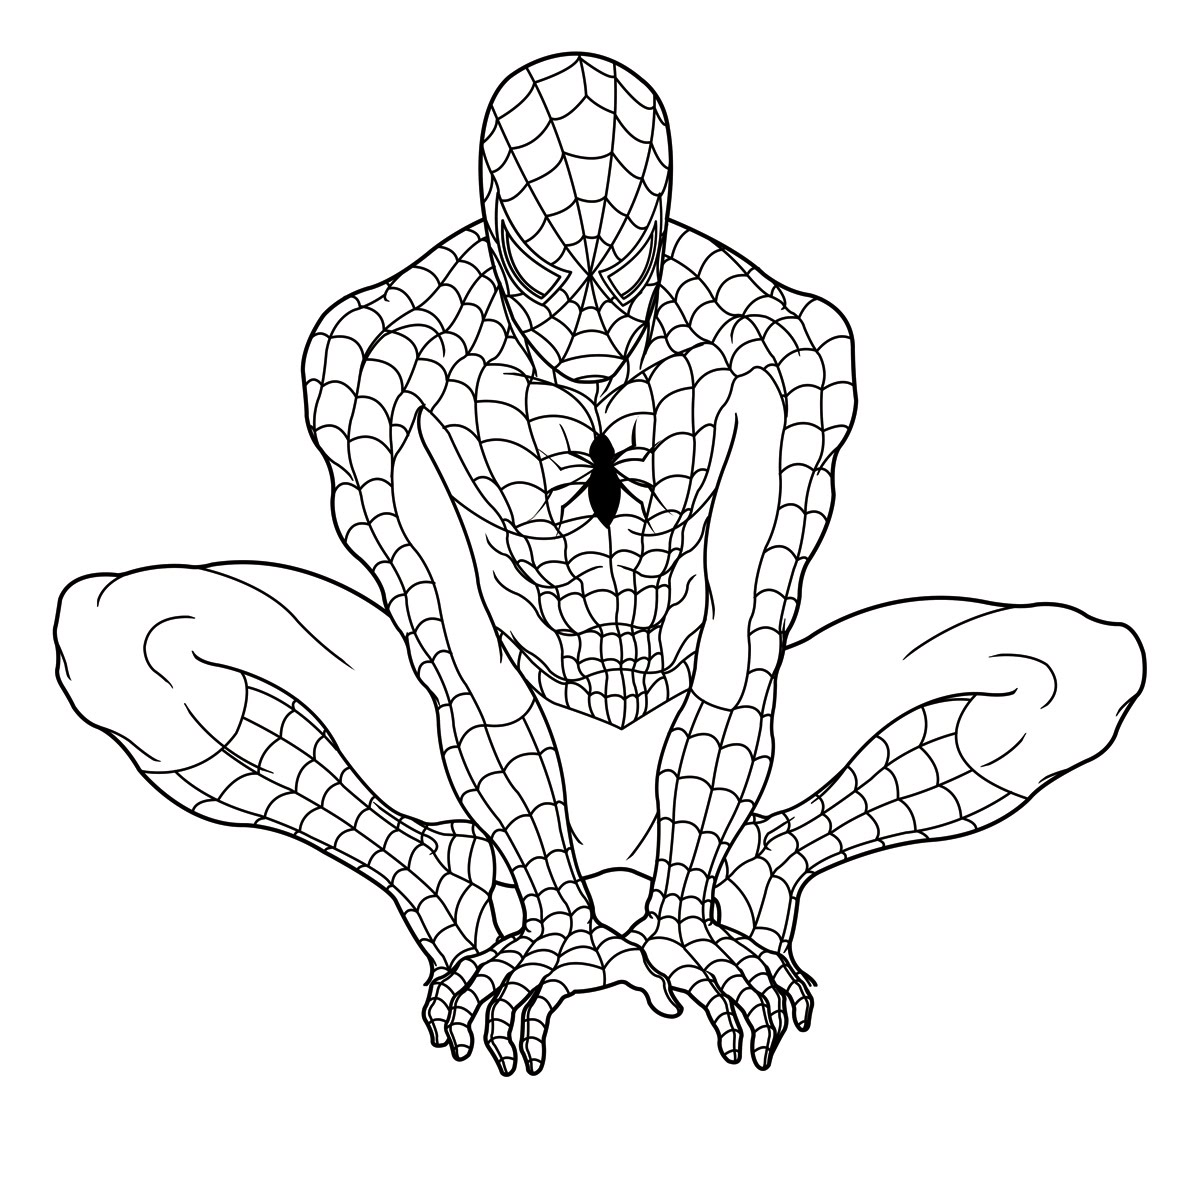 spiderman coloring page - Spiderman Coloring Pages Free